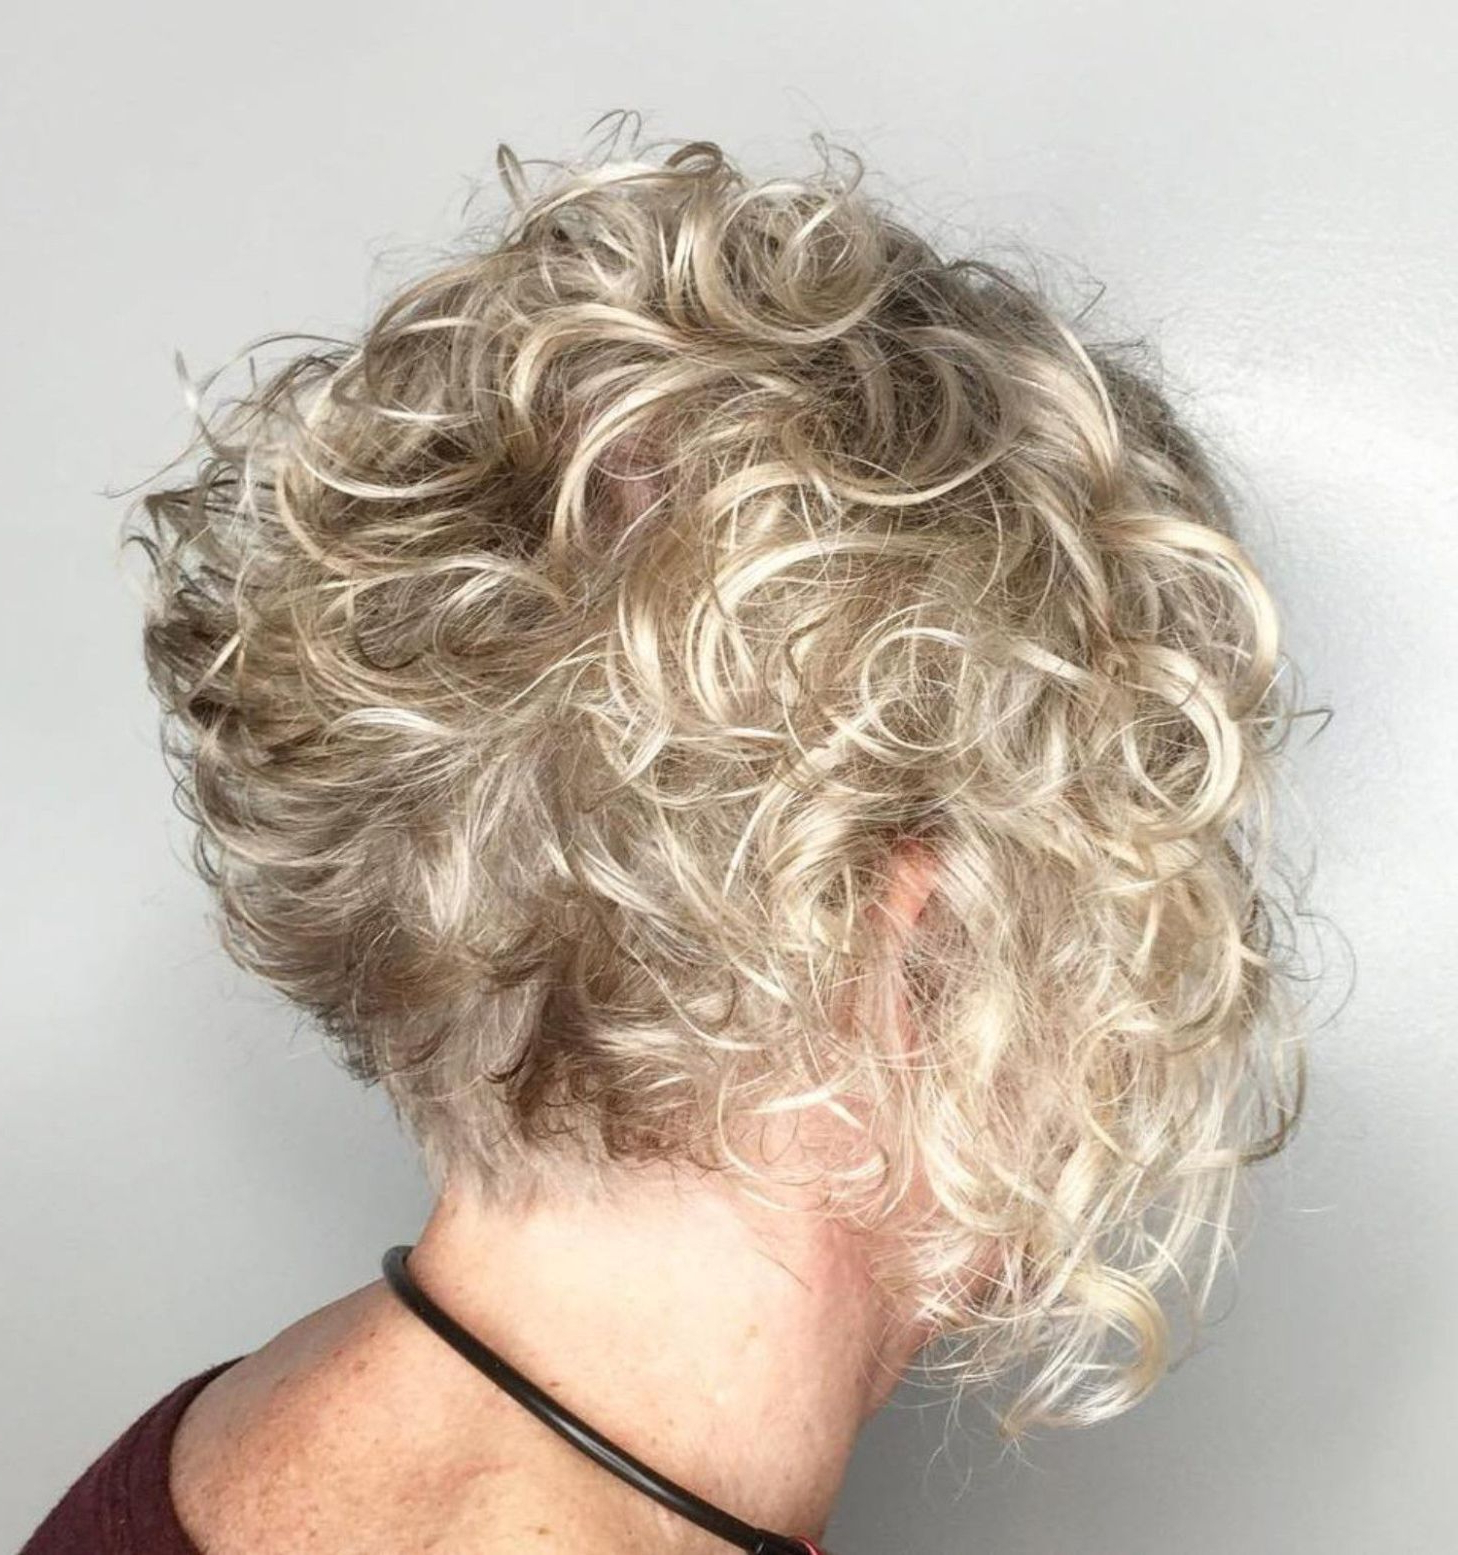 90 Classy And Simple Short Hairstyles For Women Over 50 In 2018 Pertaining To Playful Blonde Curls Hairstyles (View 6 of 20)